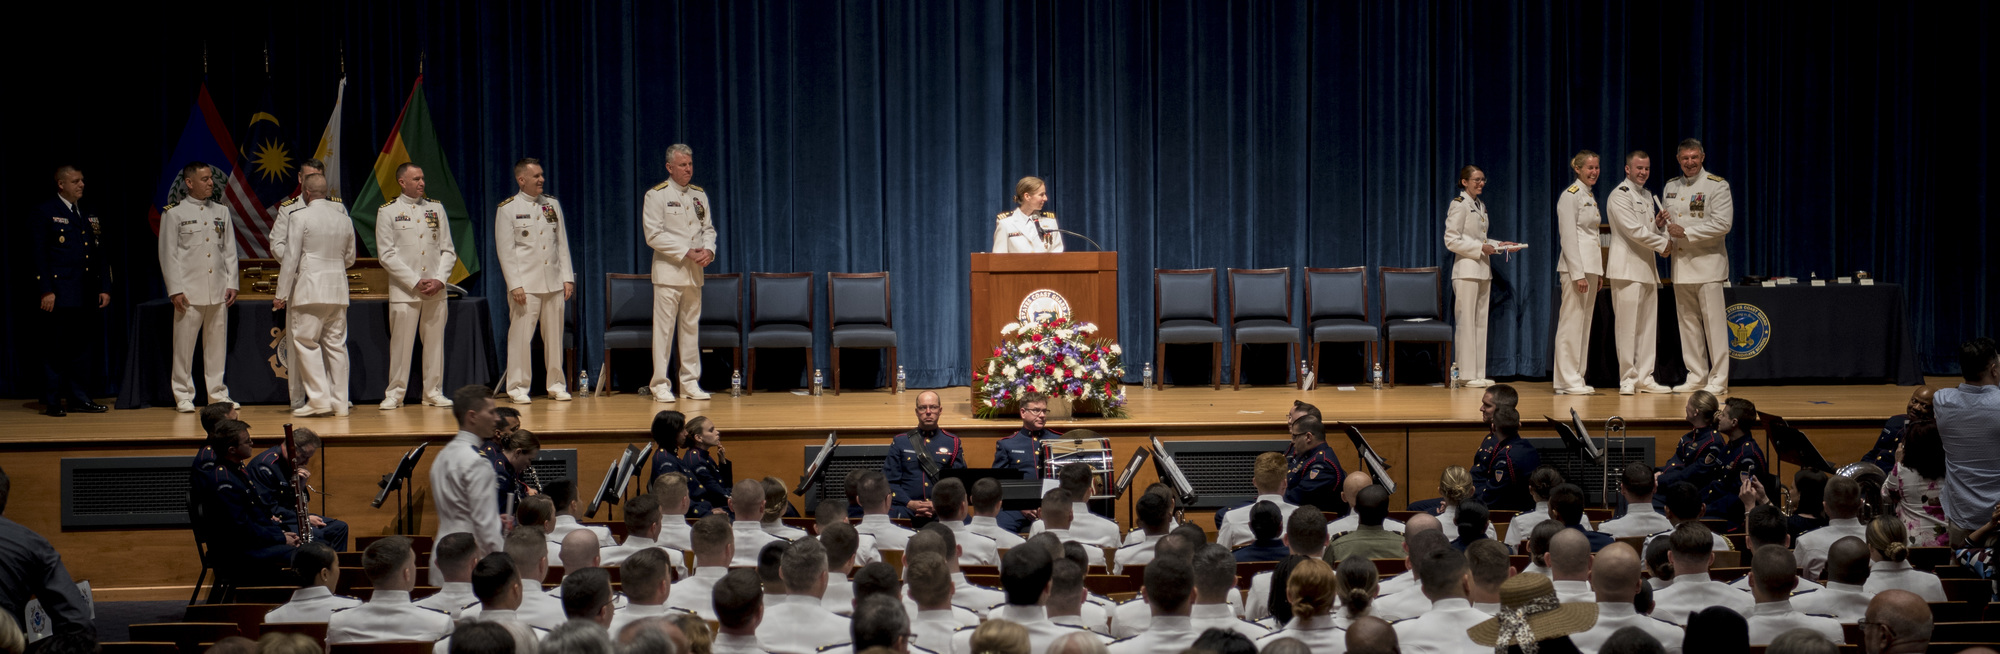 Officer Candidate School graduates 78 new officers